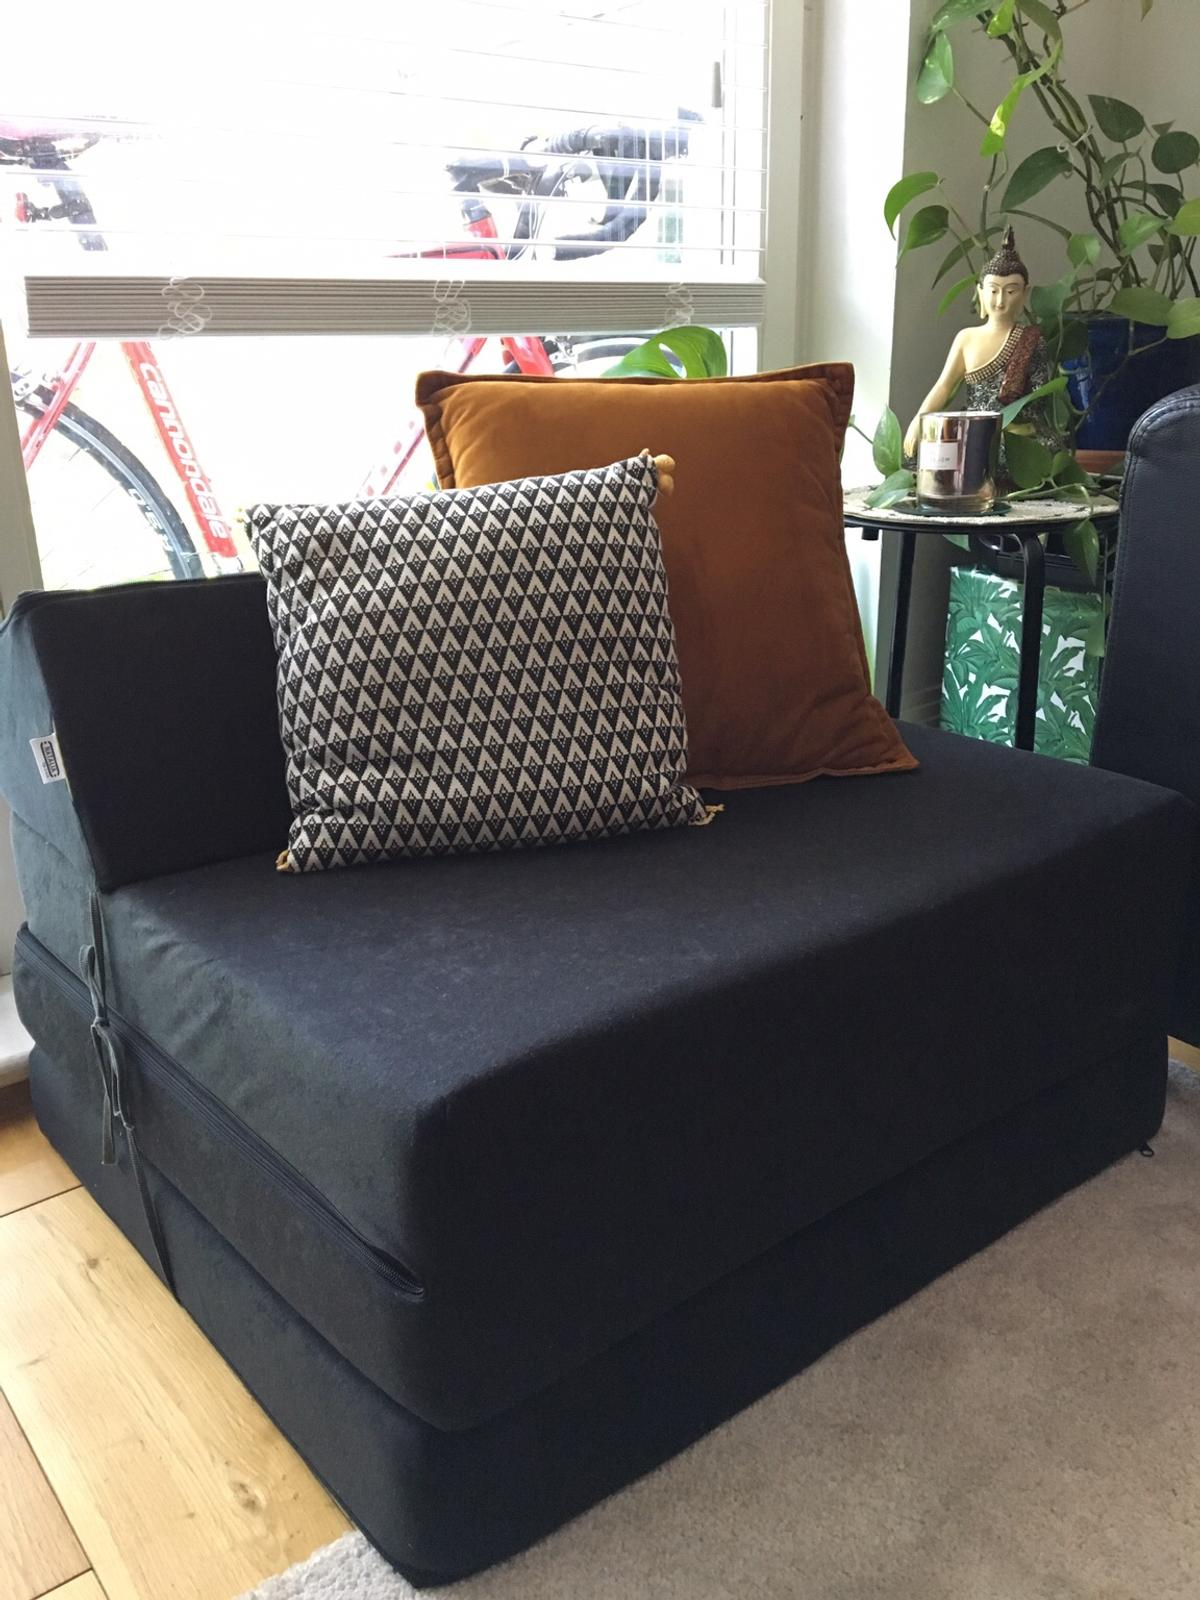 Magnificent Sofa Bed Folding Mattress Single In Br1 Bromley For Andrewgaddart Wooden Chair Designs For Living Room Andrewgaddartcom